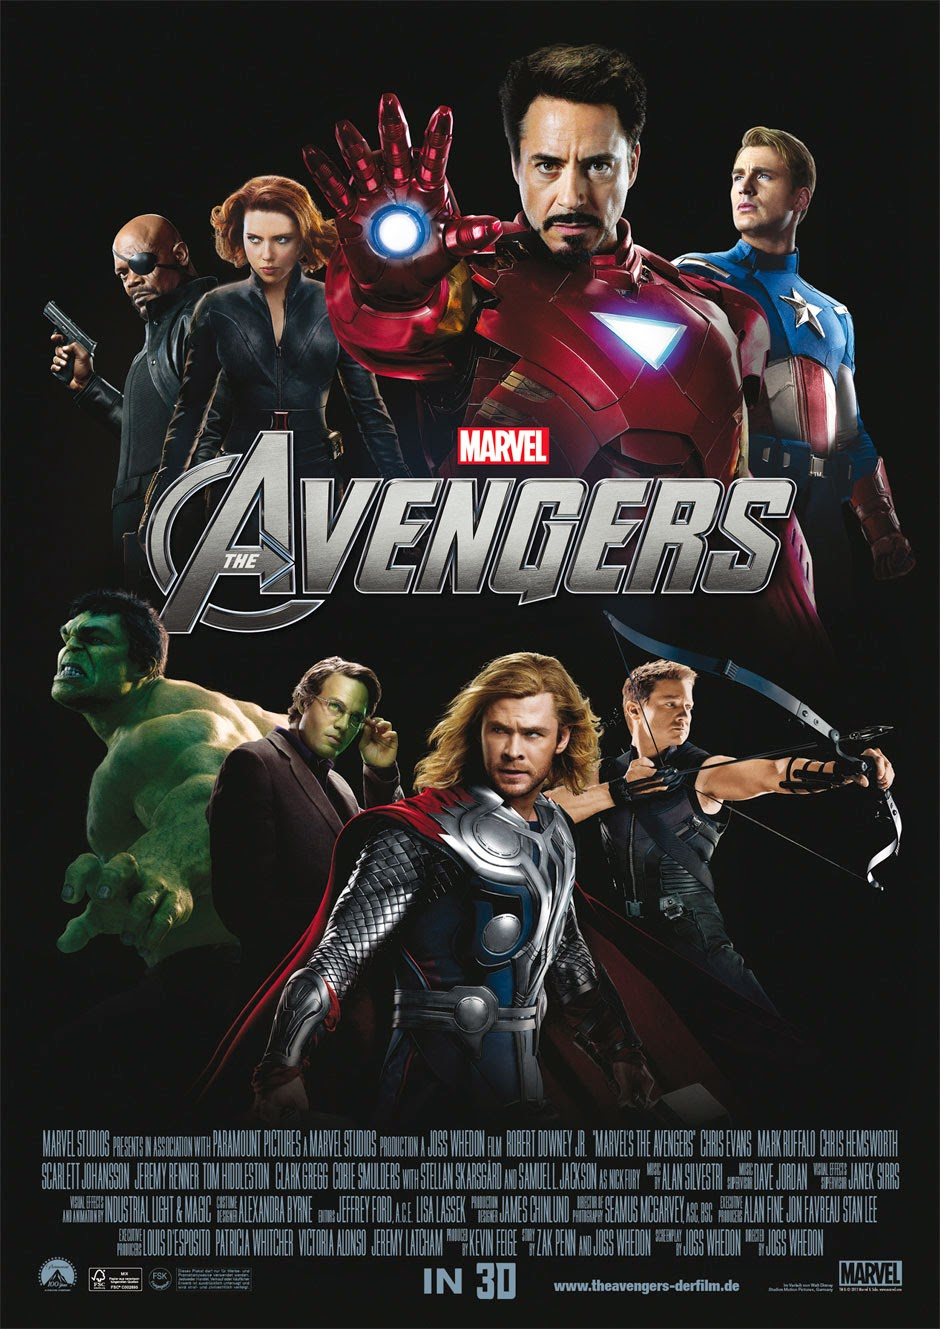 download film the avengers full movie 2012 hd subtitle